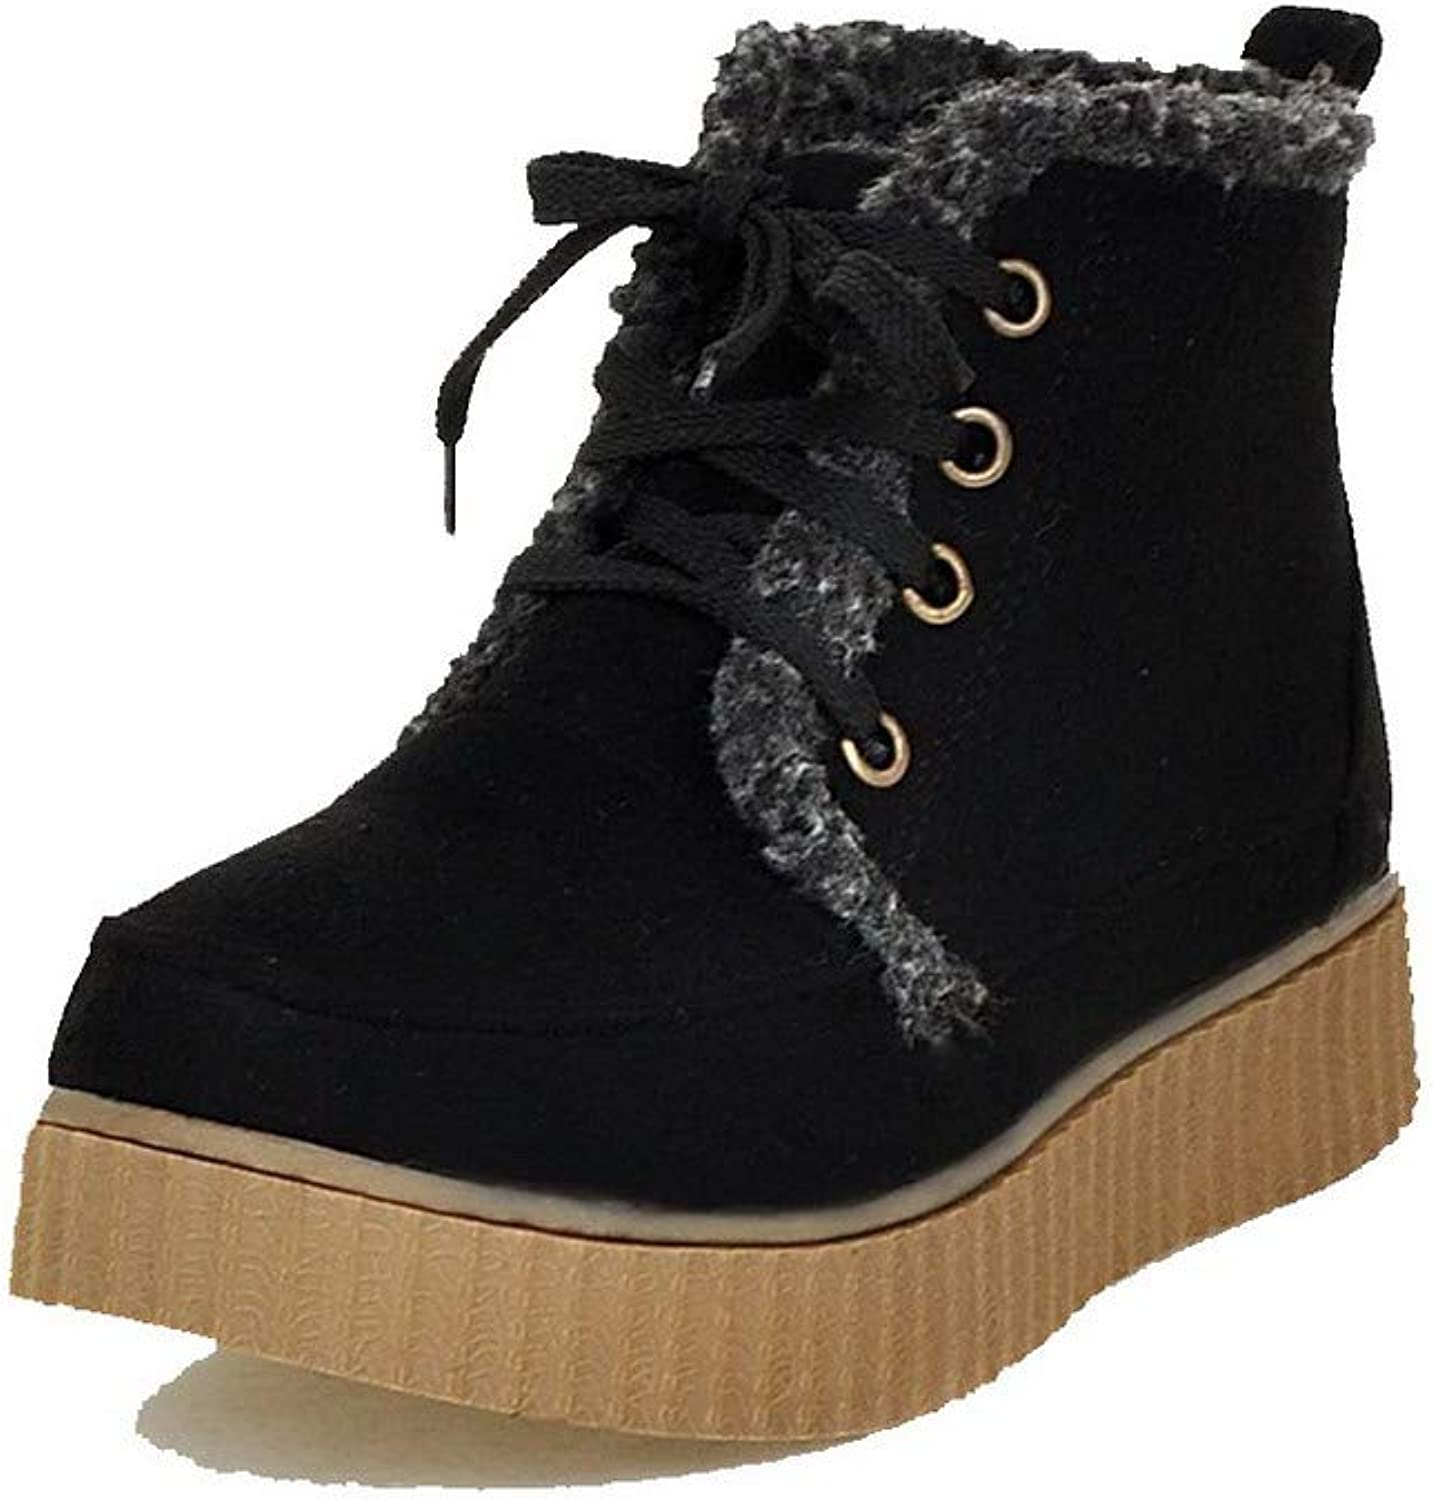 WeiPoot Women's Frosted Ankle-High Solid Lace-Up Low-Heels Boots, EGHXH123949